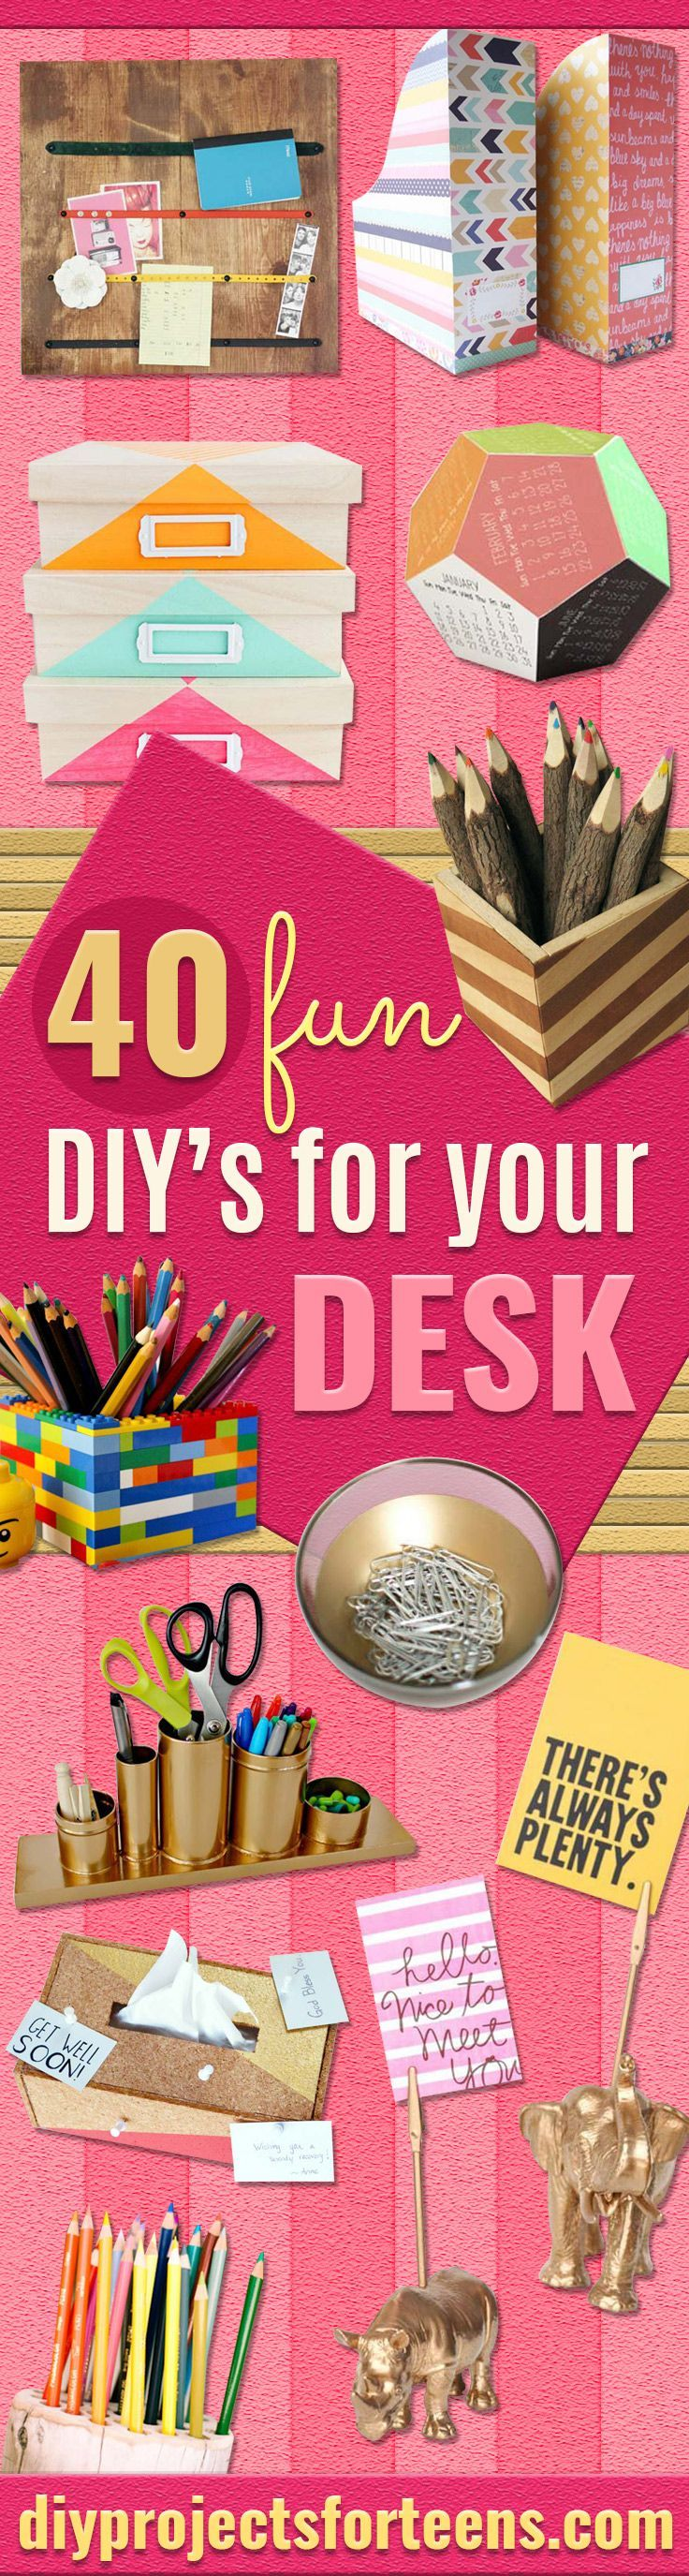 cheap office decorating ideas. 40 fun diys for your desk cheap office decorating ideas t